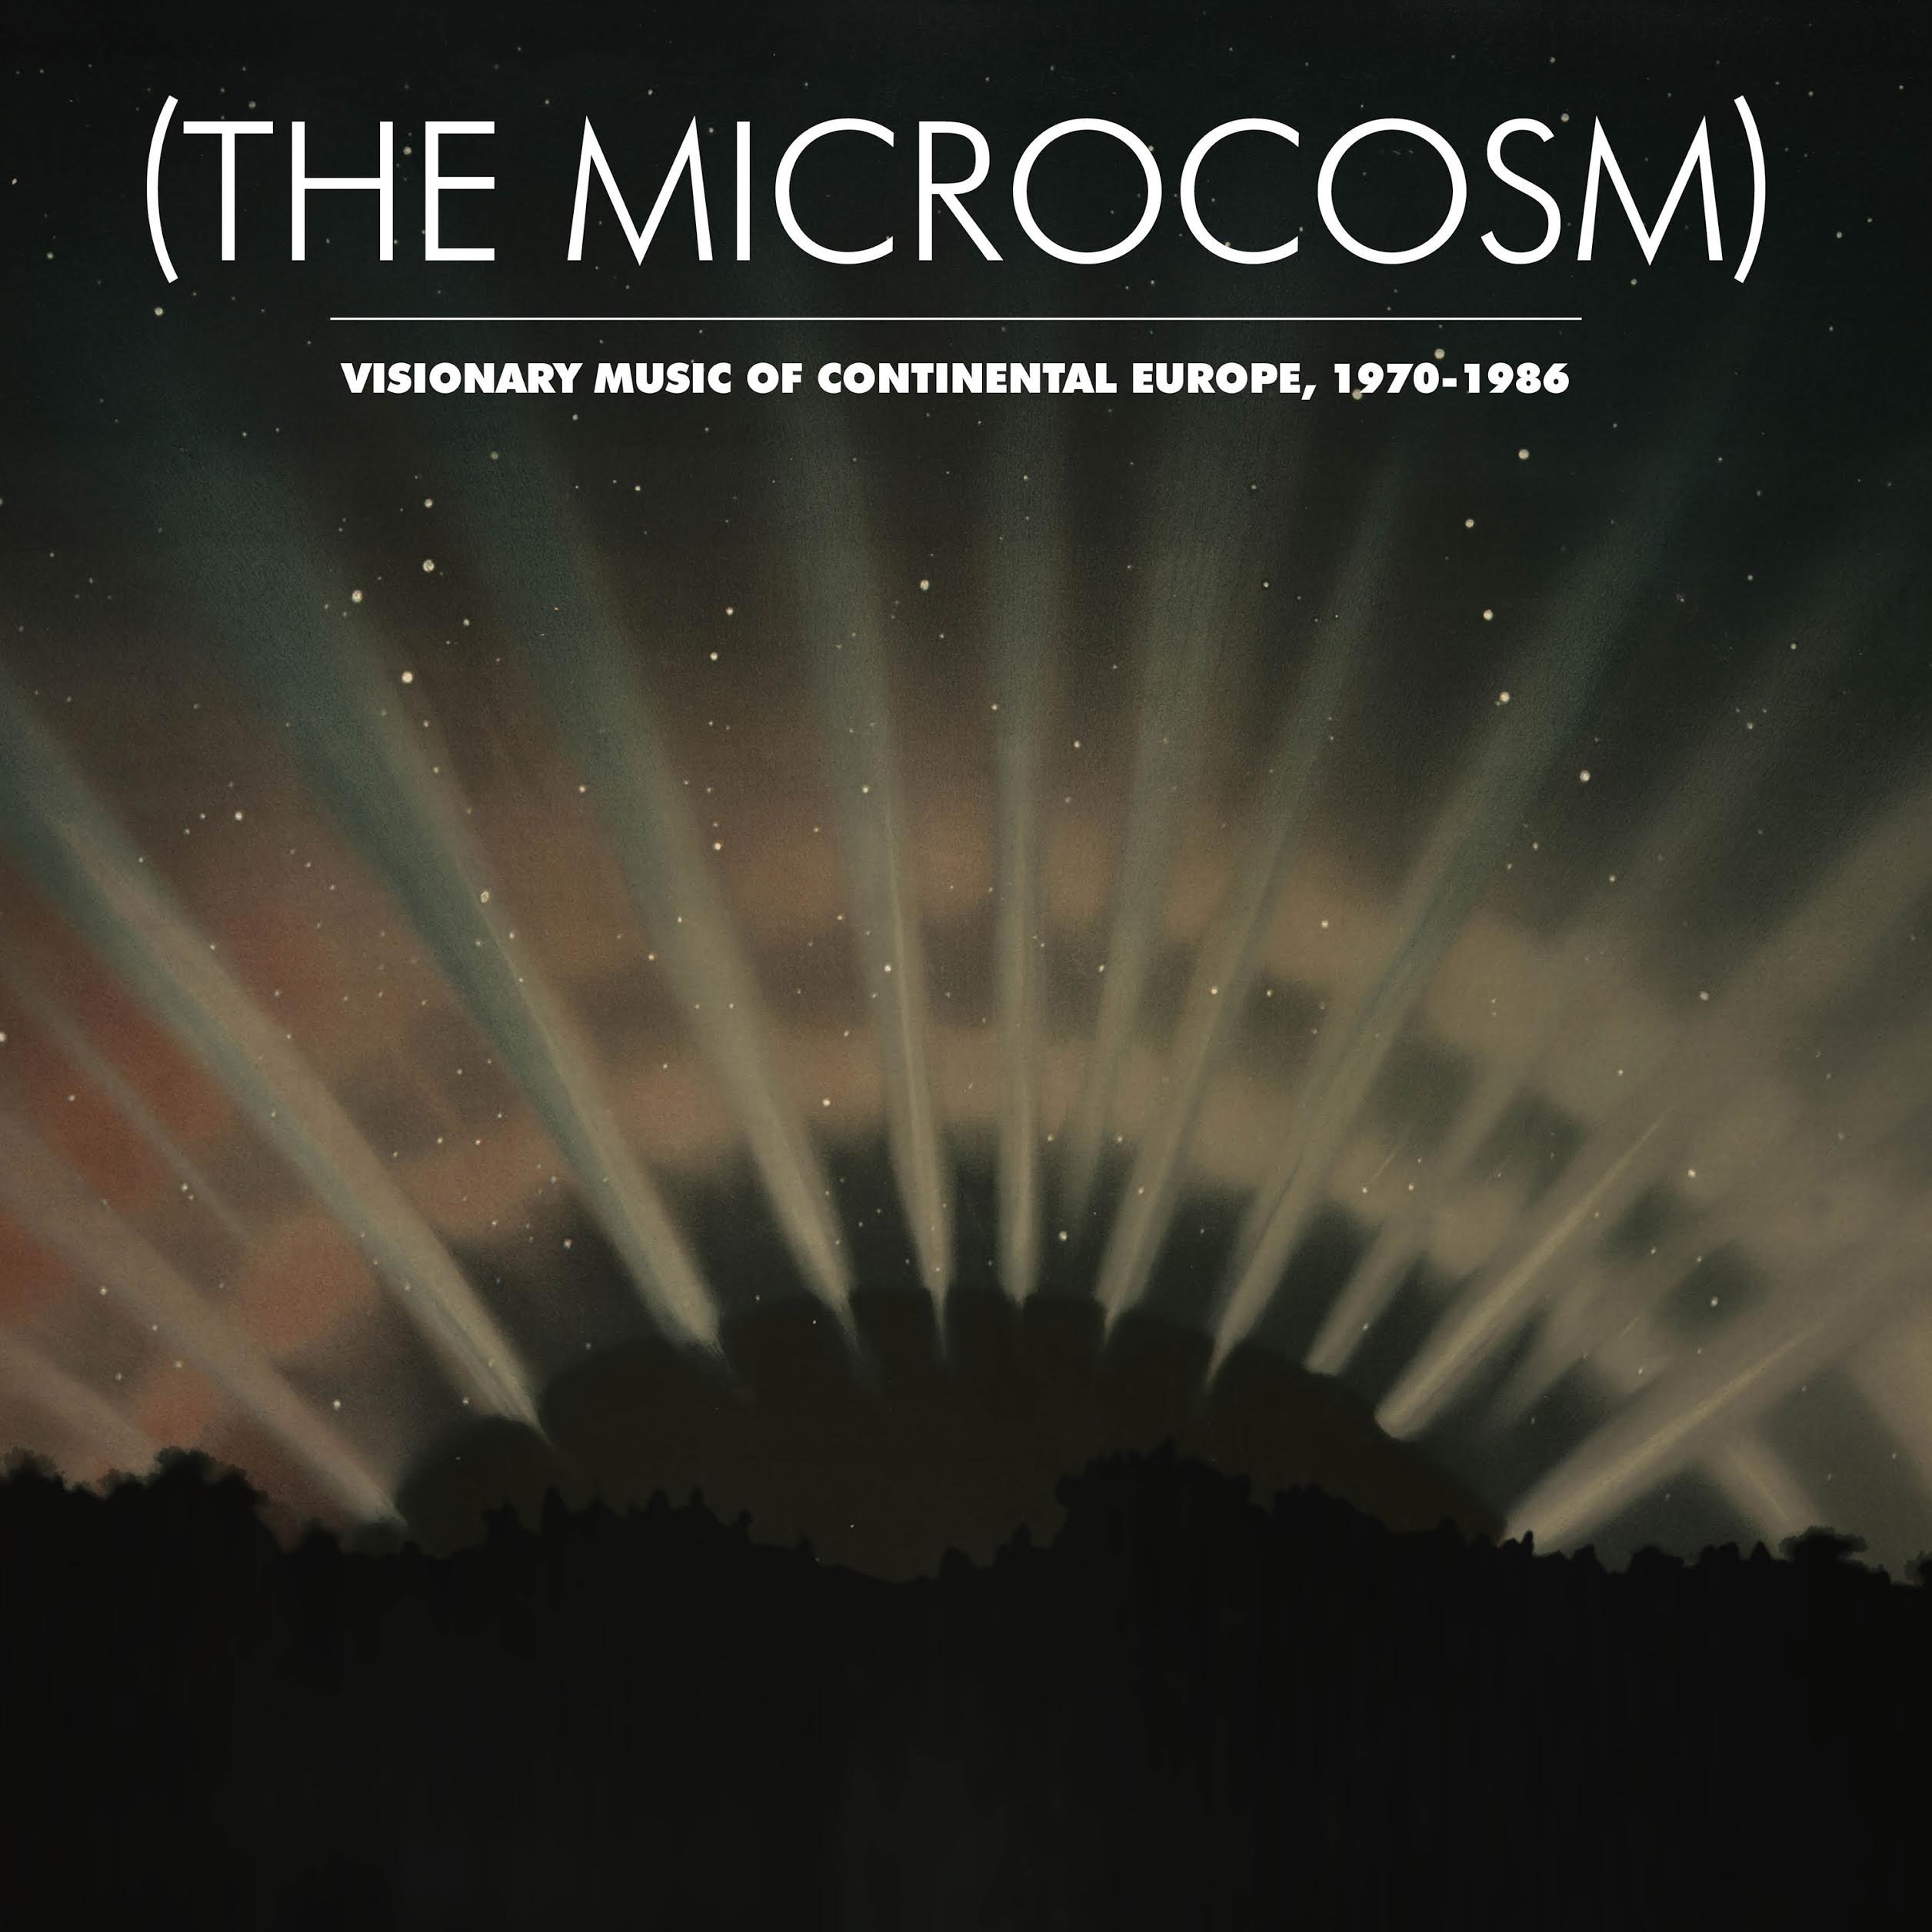 The Microcosm Visionary Music Of Continental Europe 1970